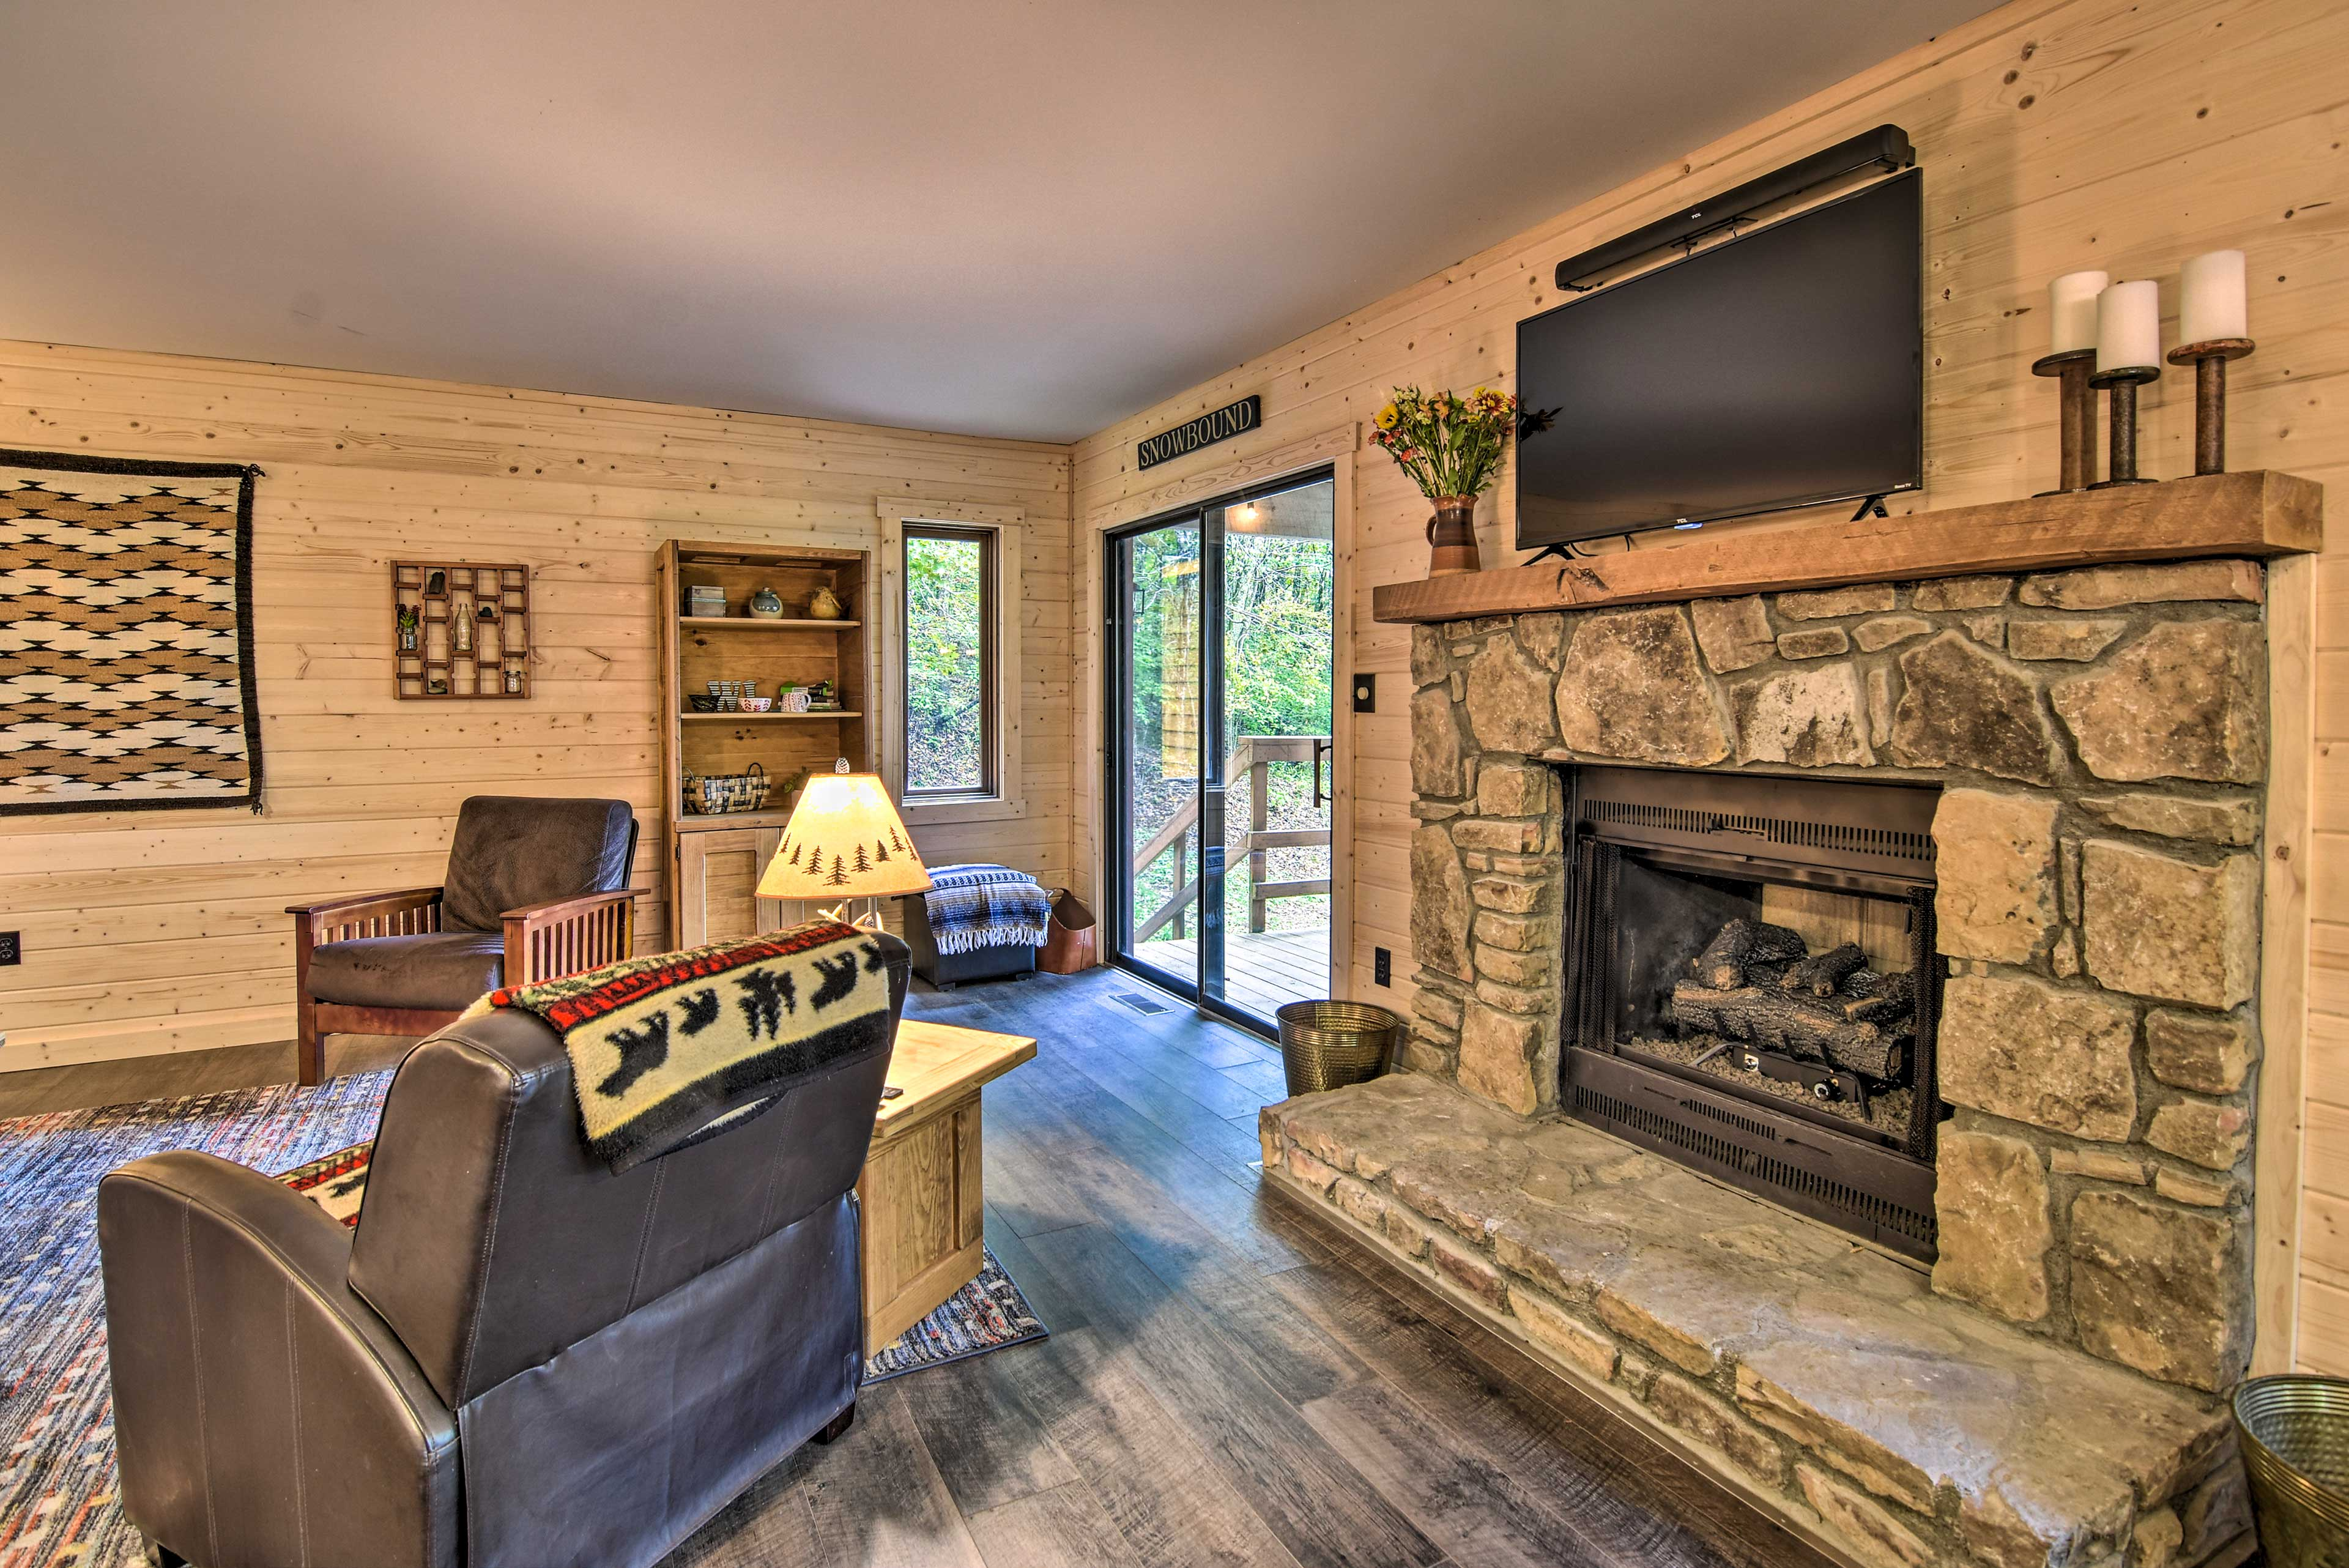 The brand new gas fireplace ensures you'll stay toasty & warm during your stay.